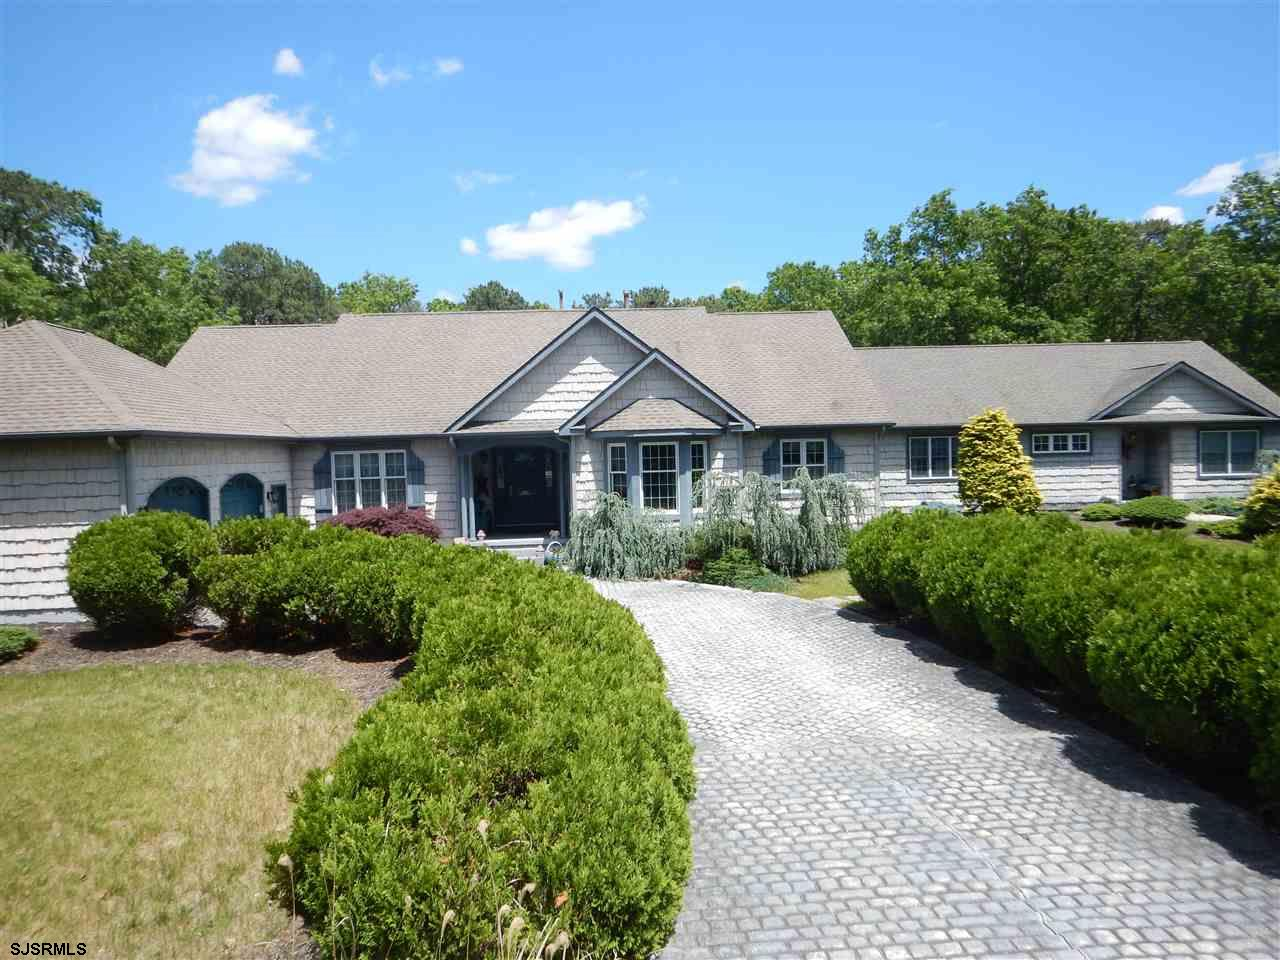 11 E Upland Ave, Galloway Township, NJ 08205